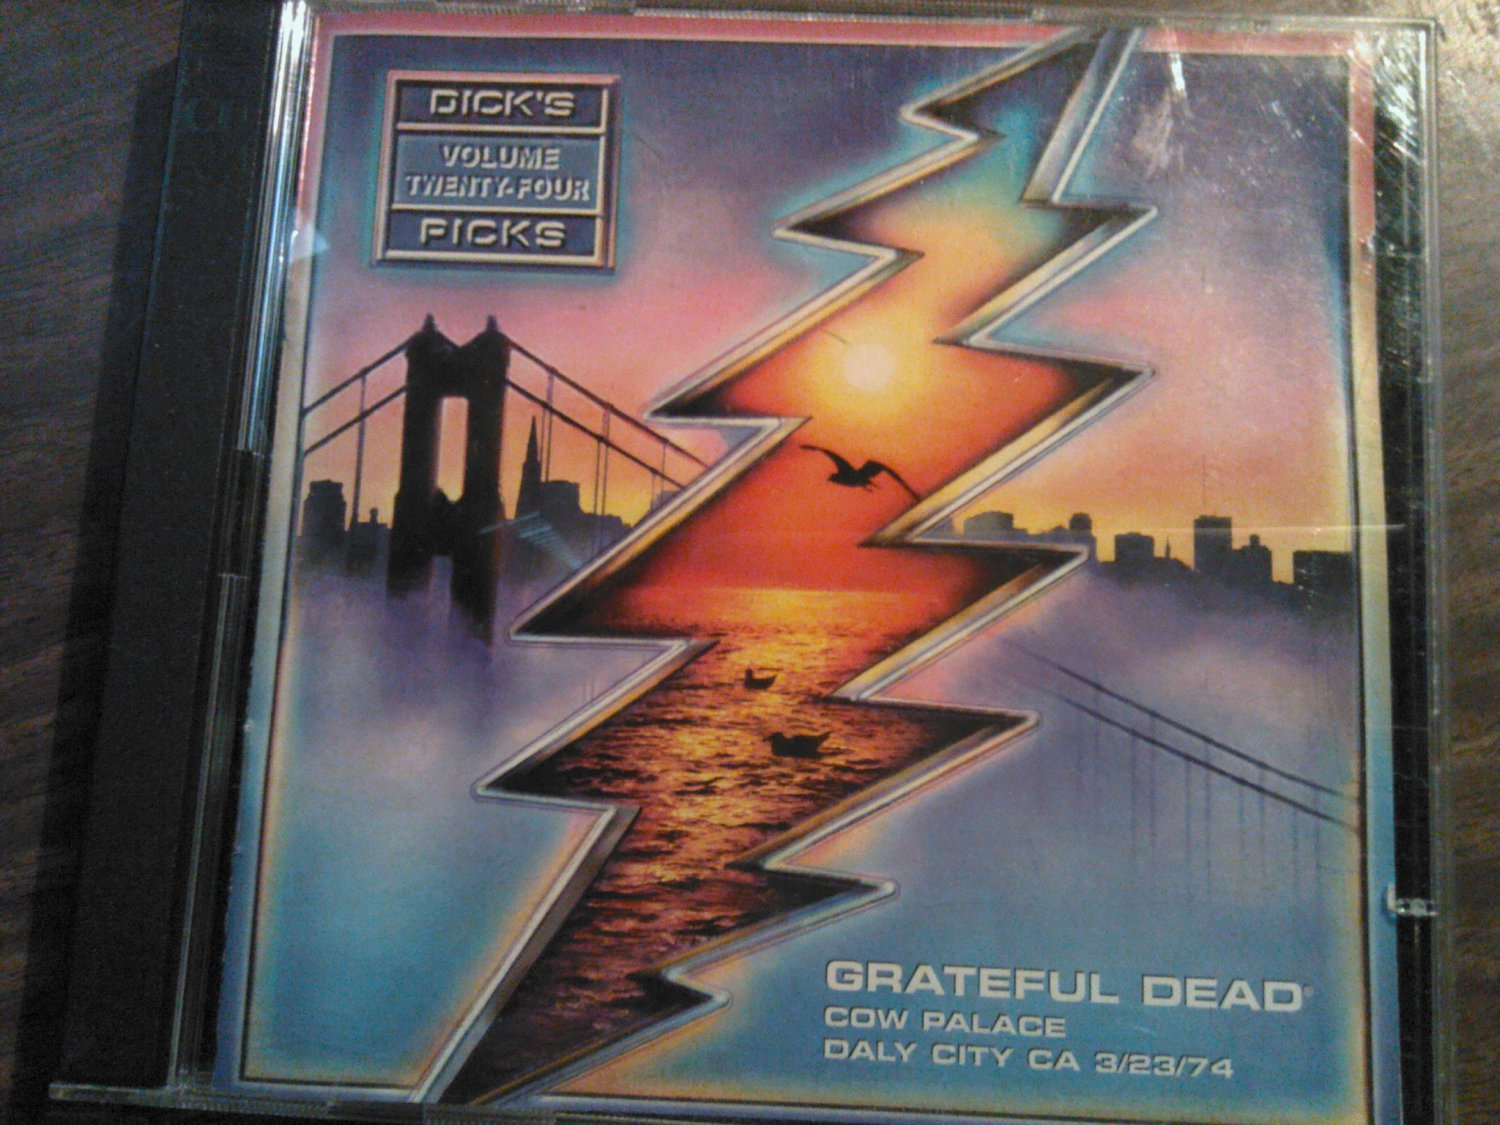 CD GRATEFUL DEAD Dick's Picks Vol 24 cow palace daly city california 3/23/74 live OOP